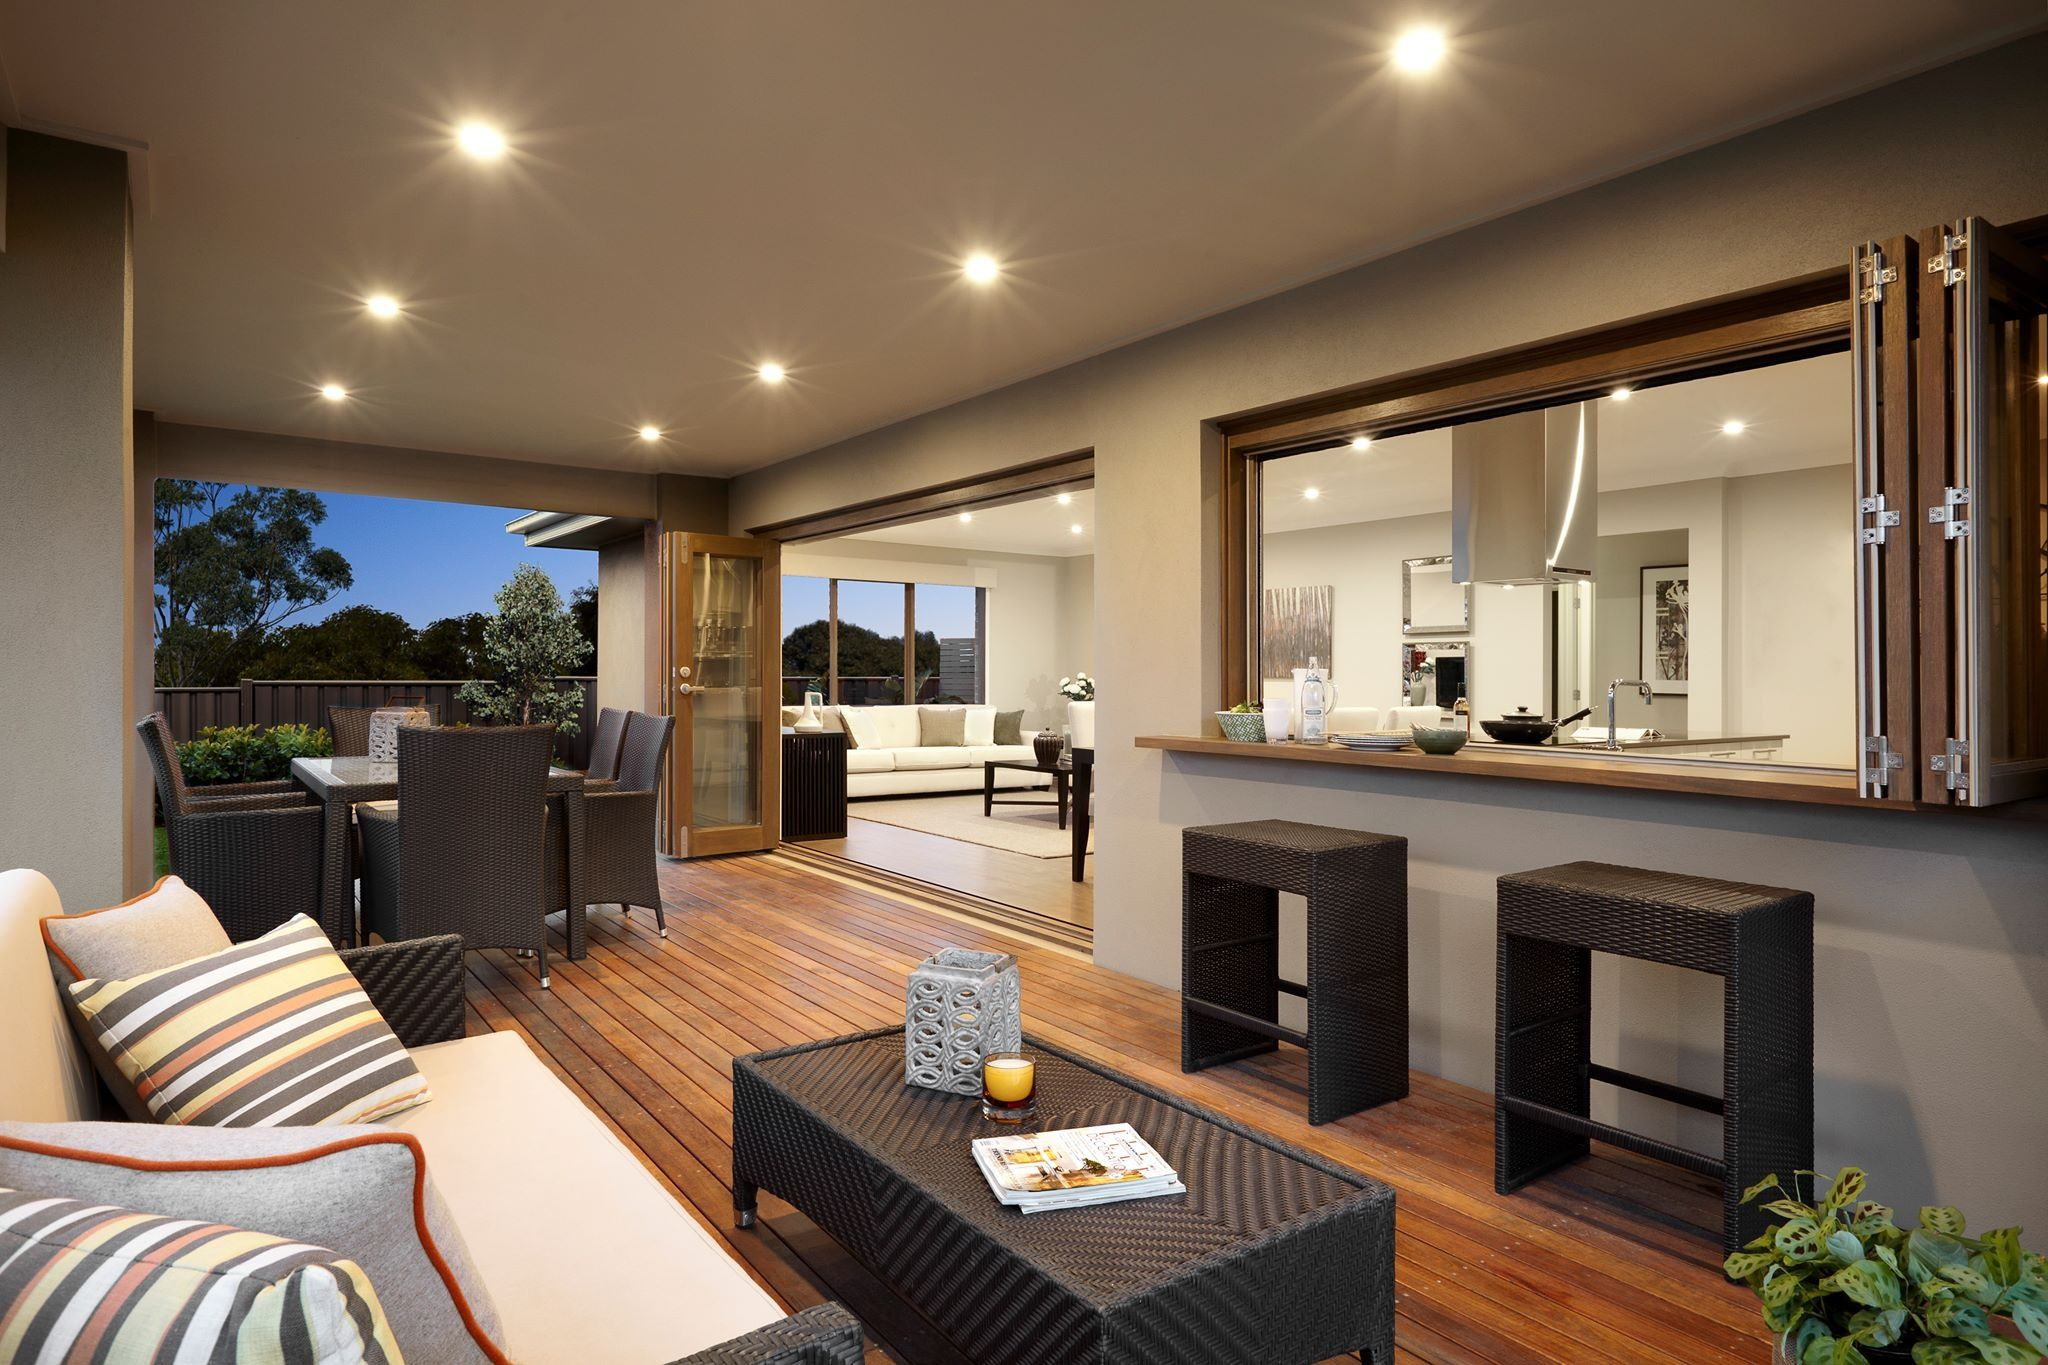 Love the decking and the bar from the kitchen need this at my